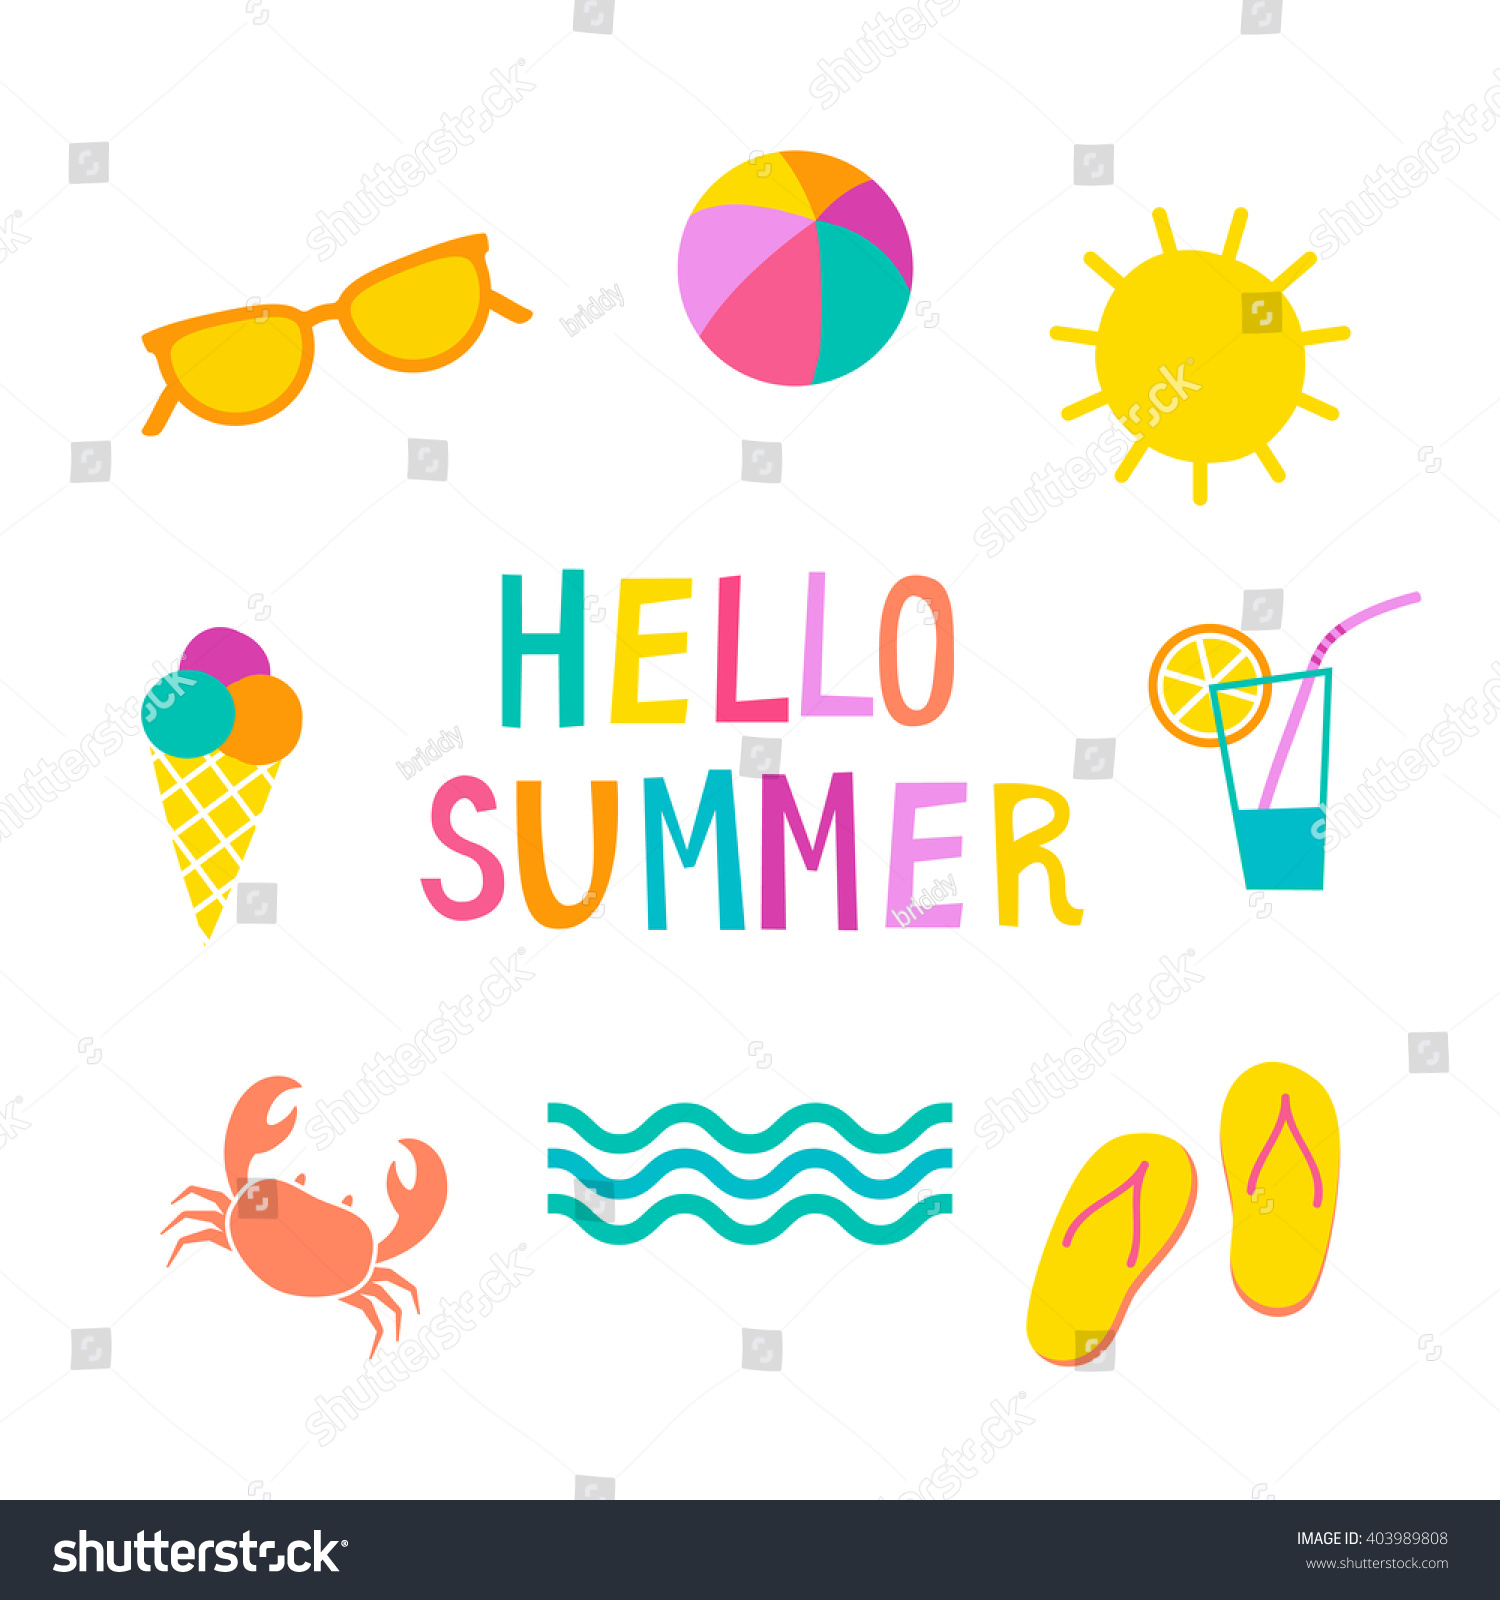 Colorful Summer Icons Set Cute Vector Stock Vector 403989808 - Shutterstock